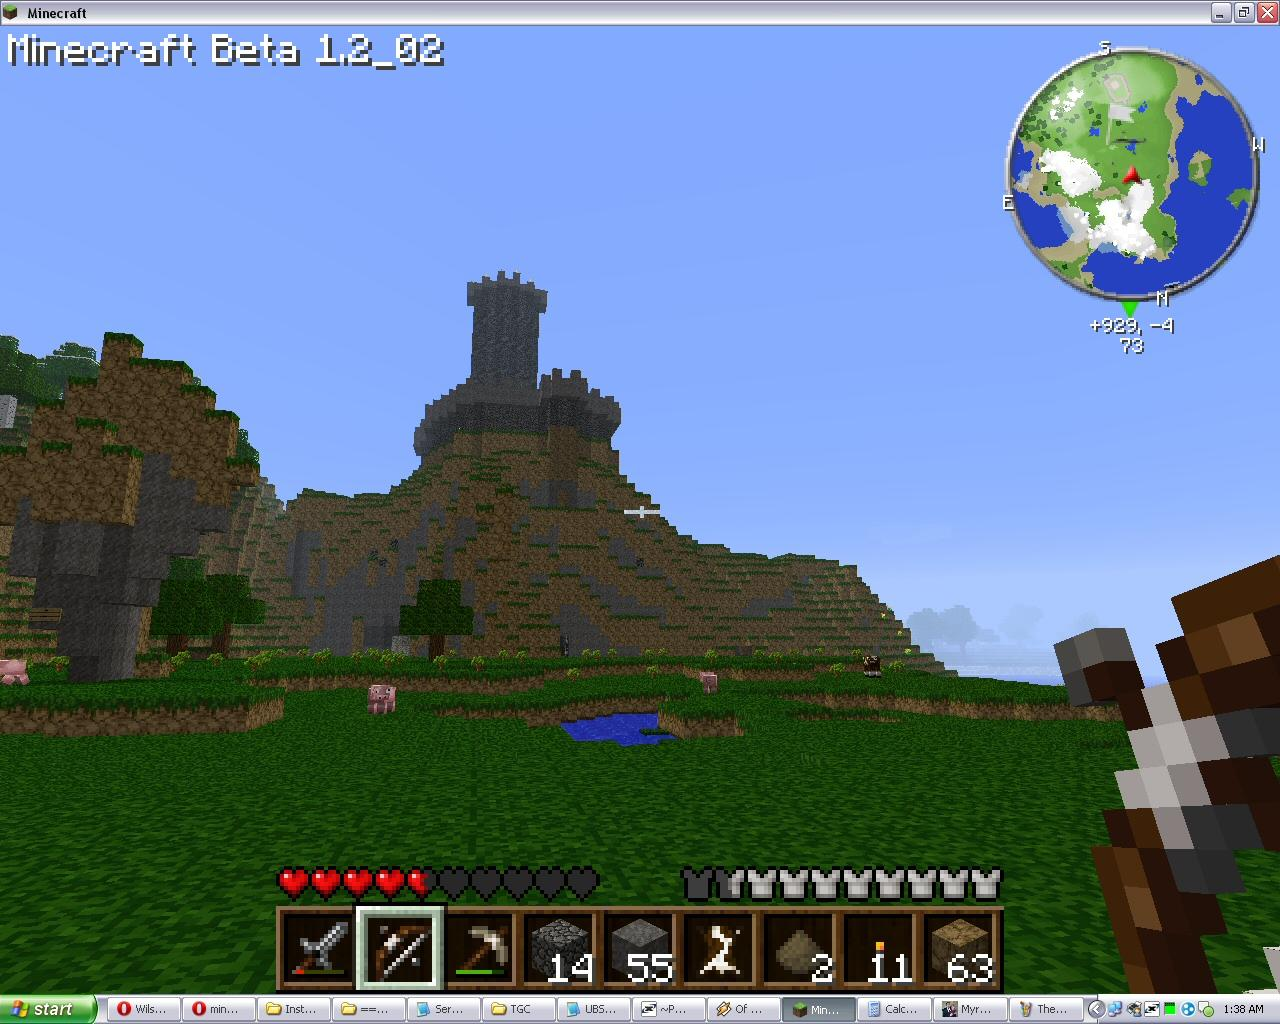 Crown Hill - my first SMP Castle, on Wilson's server